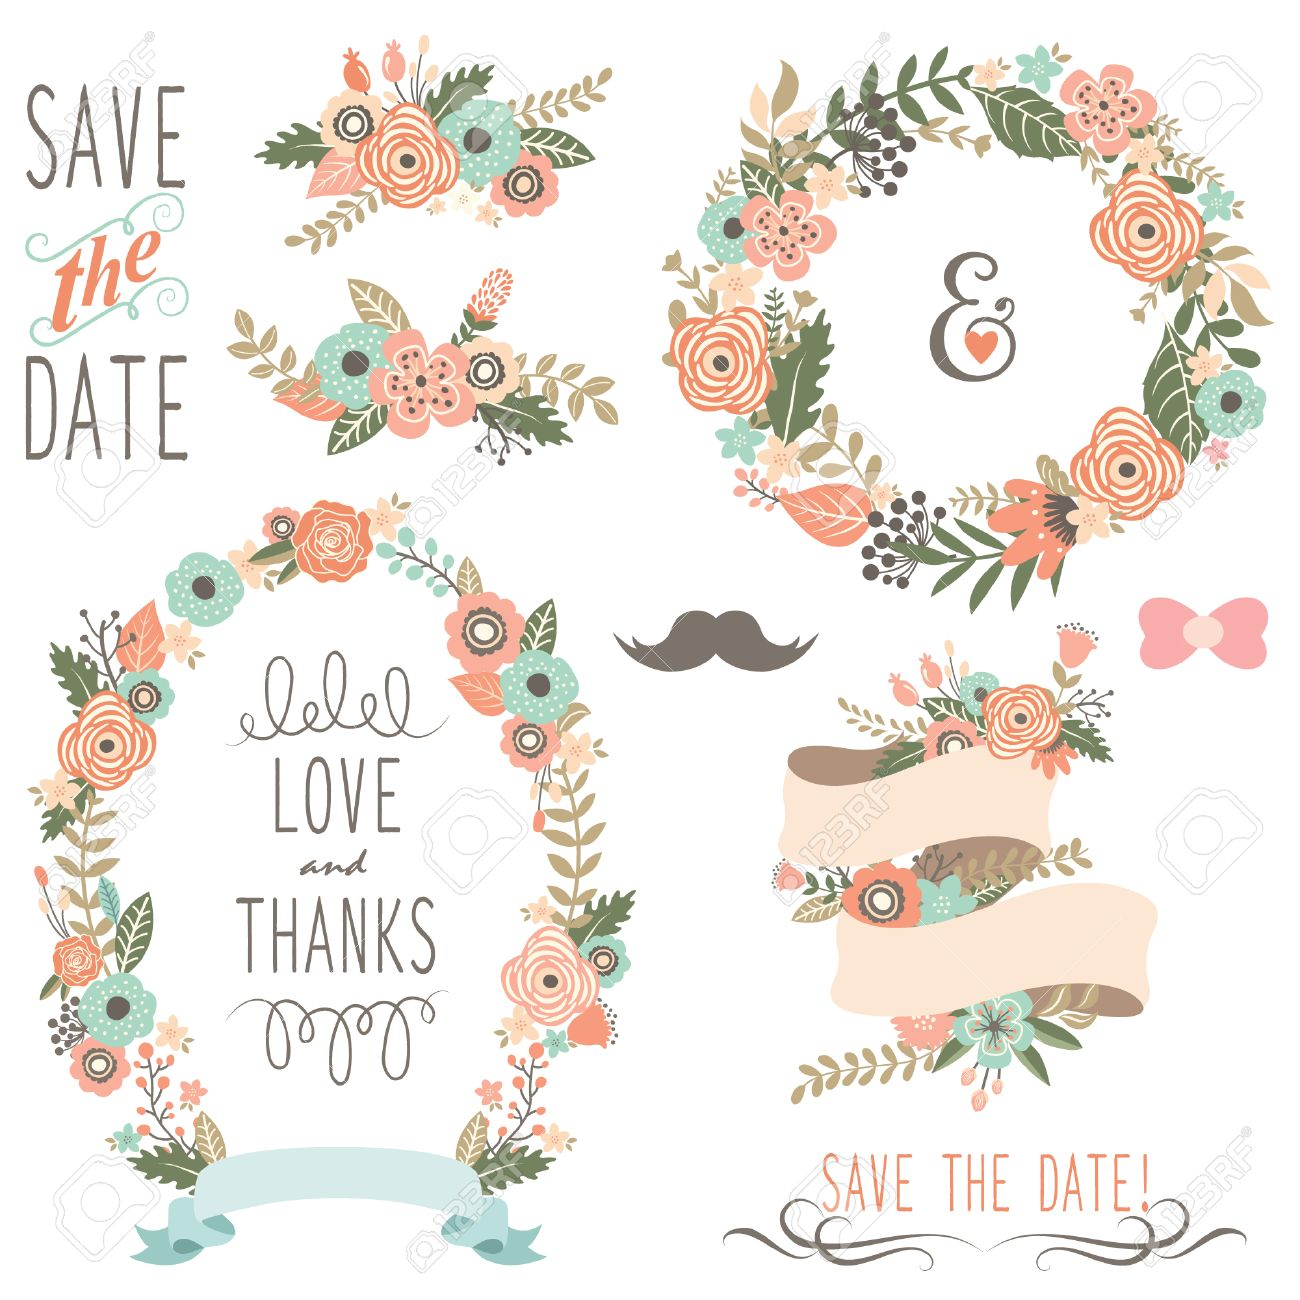 Rustic Wedding Flowers Wreath Stock Vector